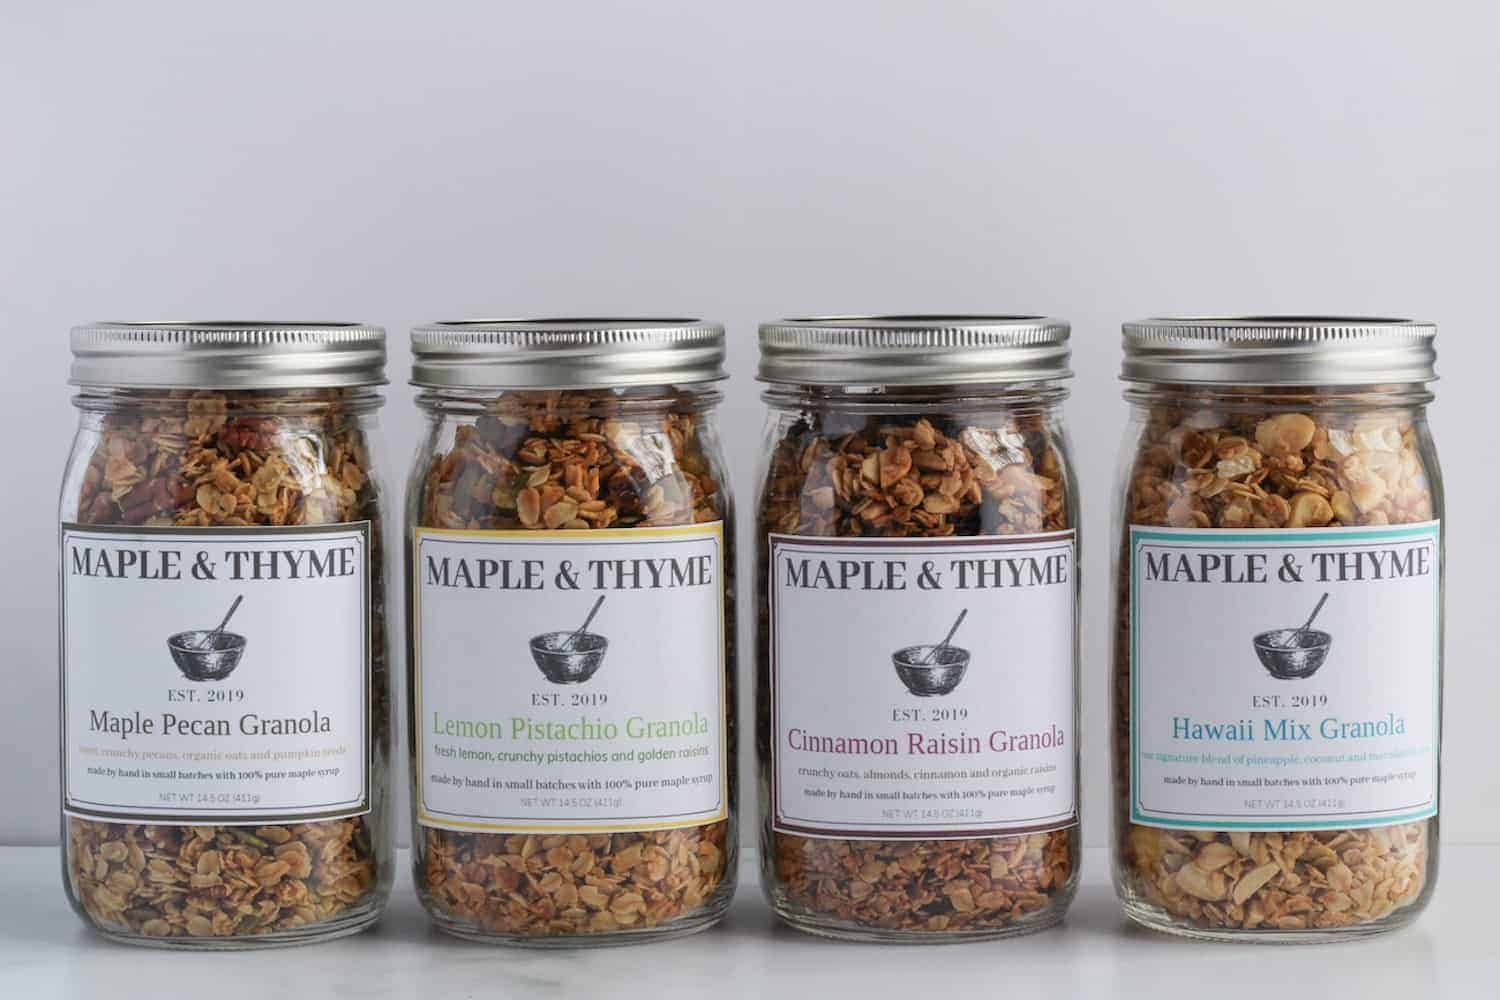 Maple and Thyme Granola Shop Is Open